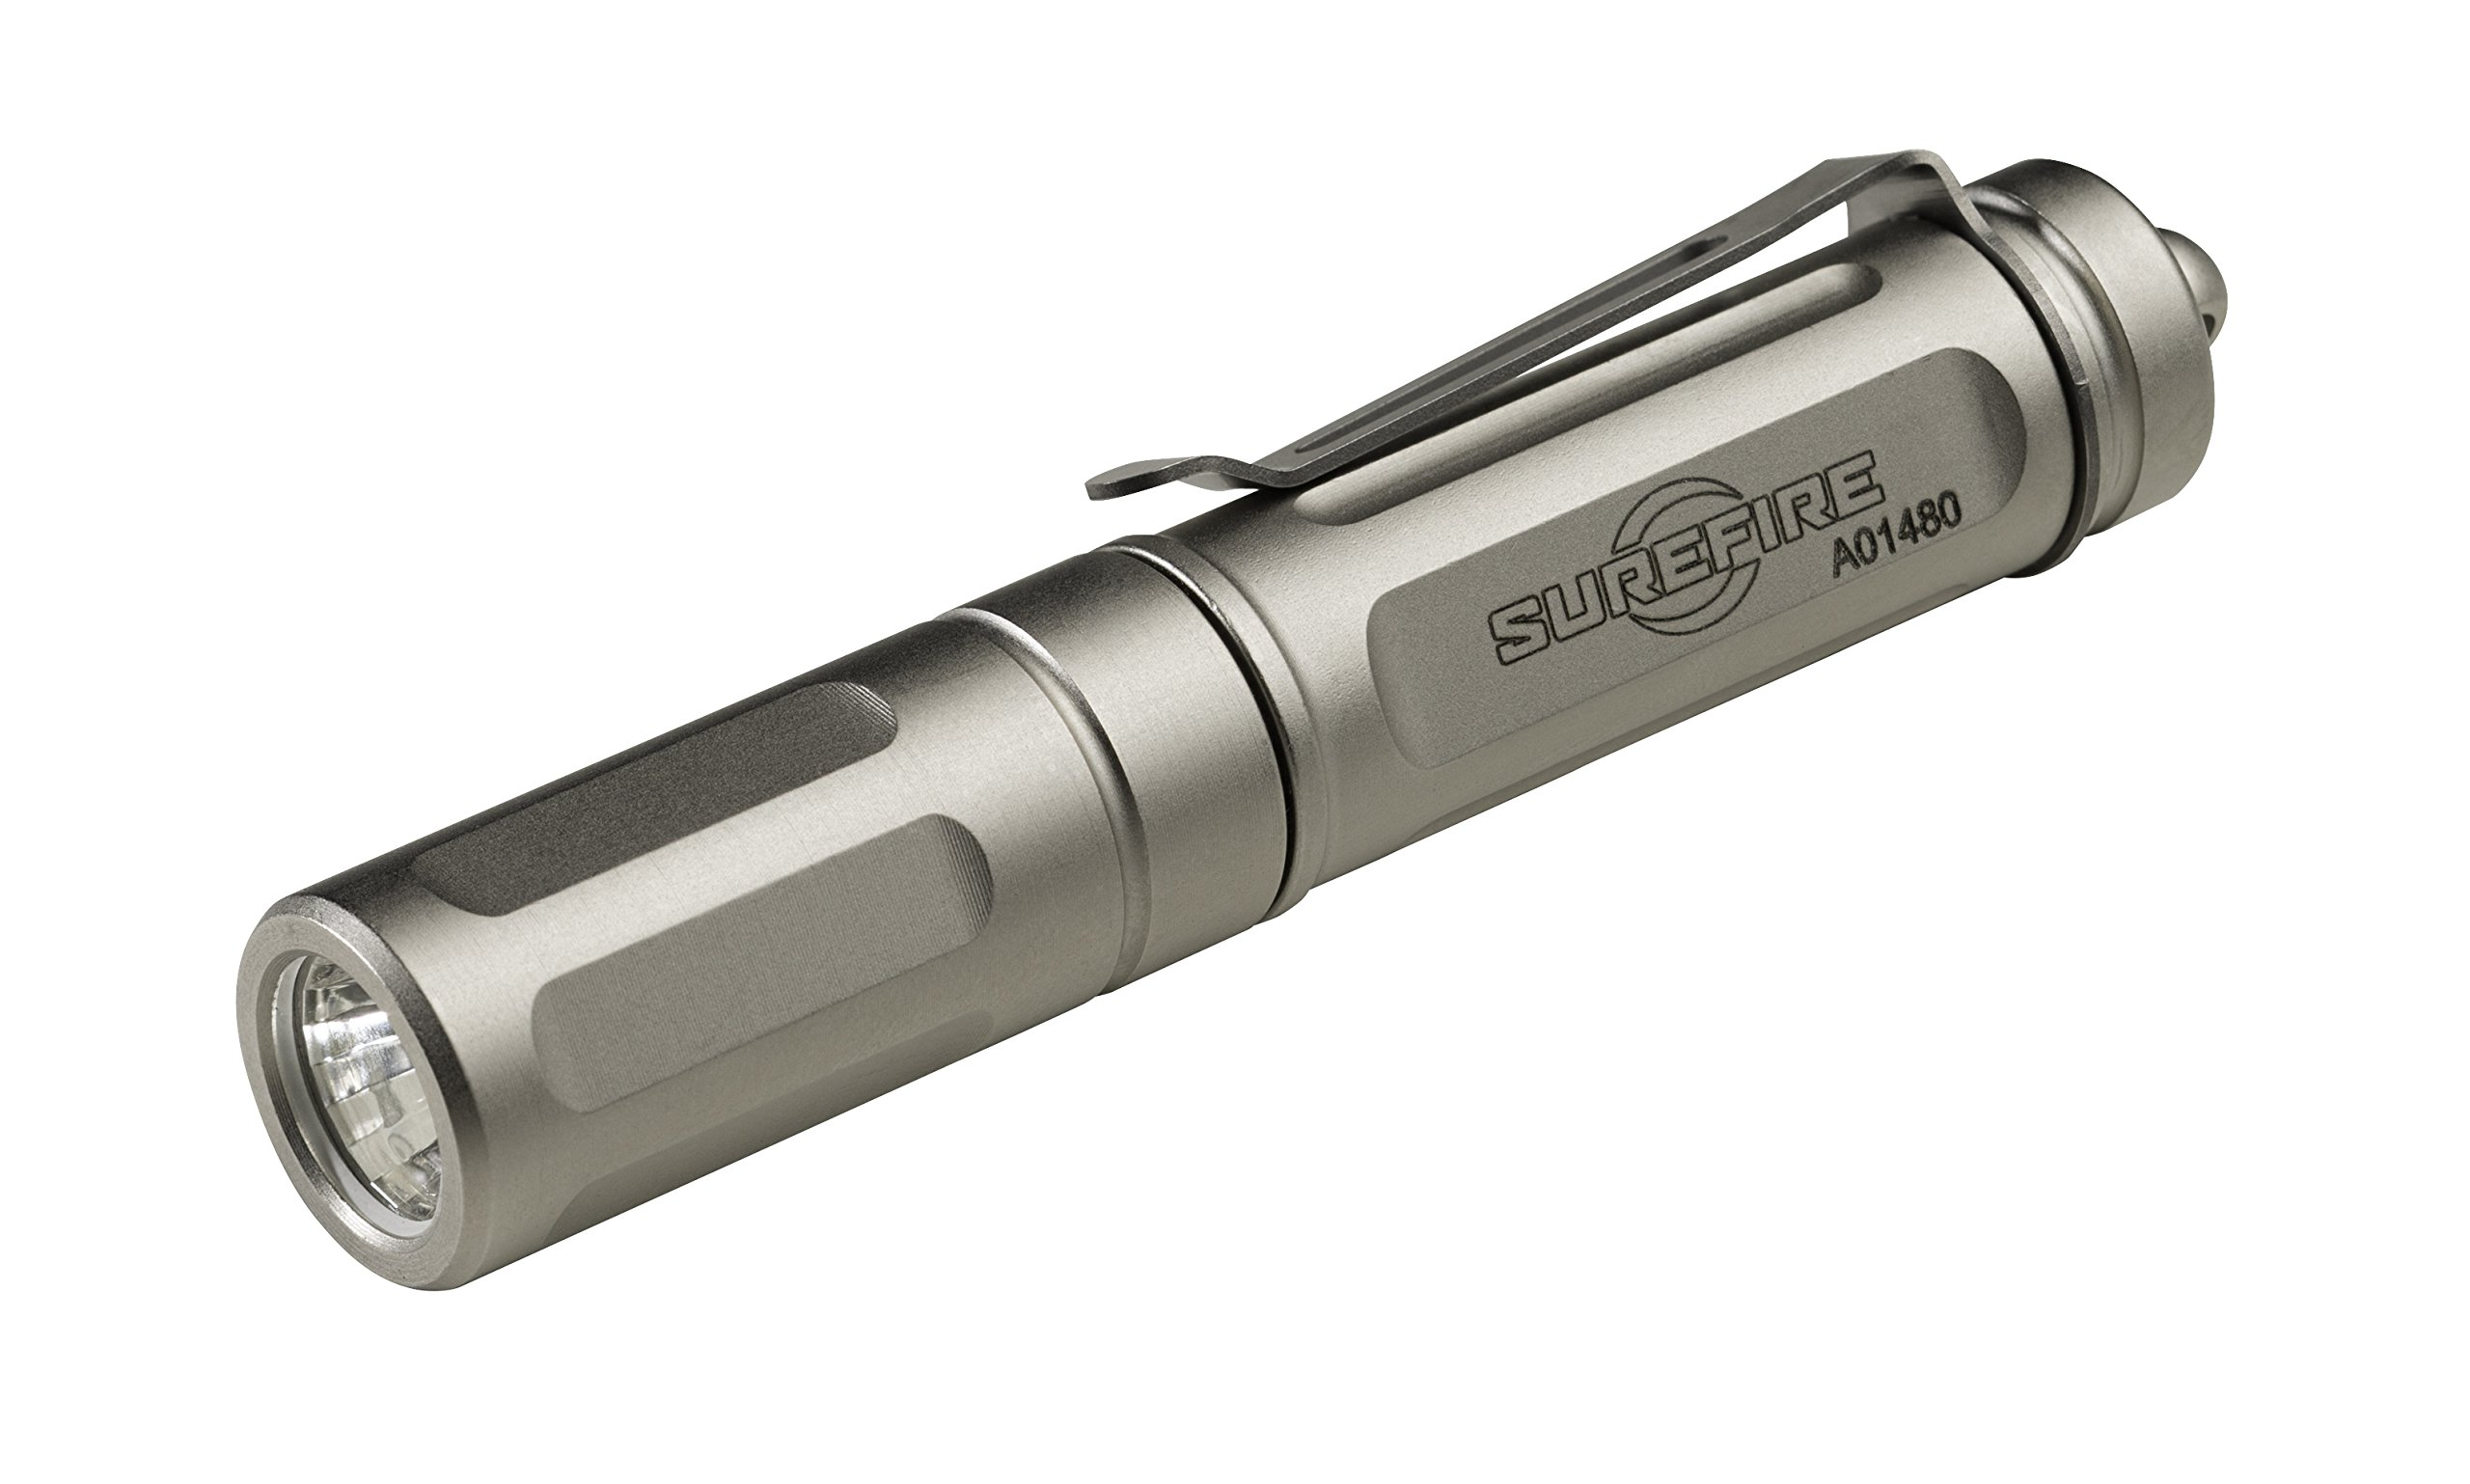 SureFire Titan Plus Ultra-Compact Variable-Output LED Keychain Light, Silver matte by SureFire (Image #2)